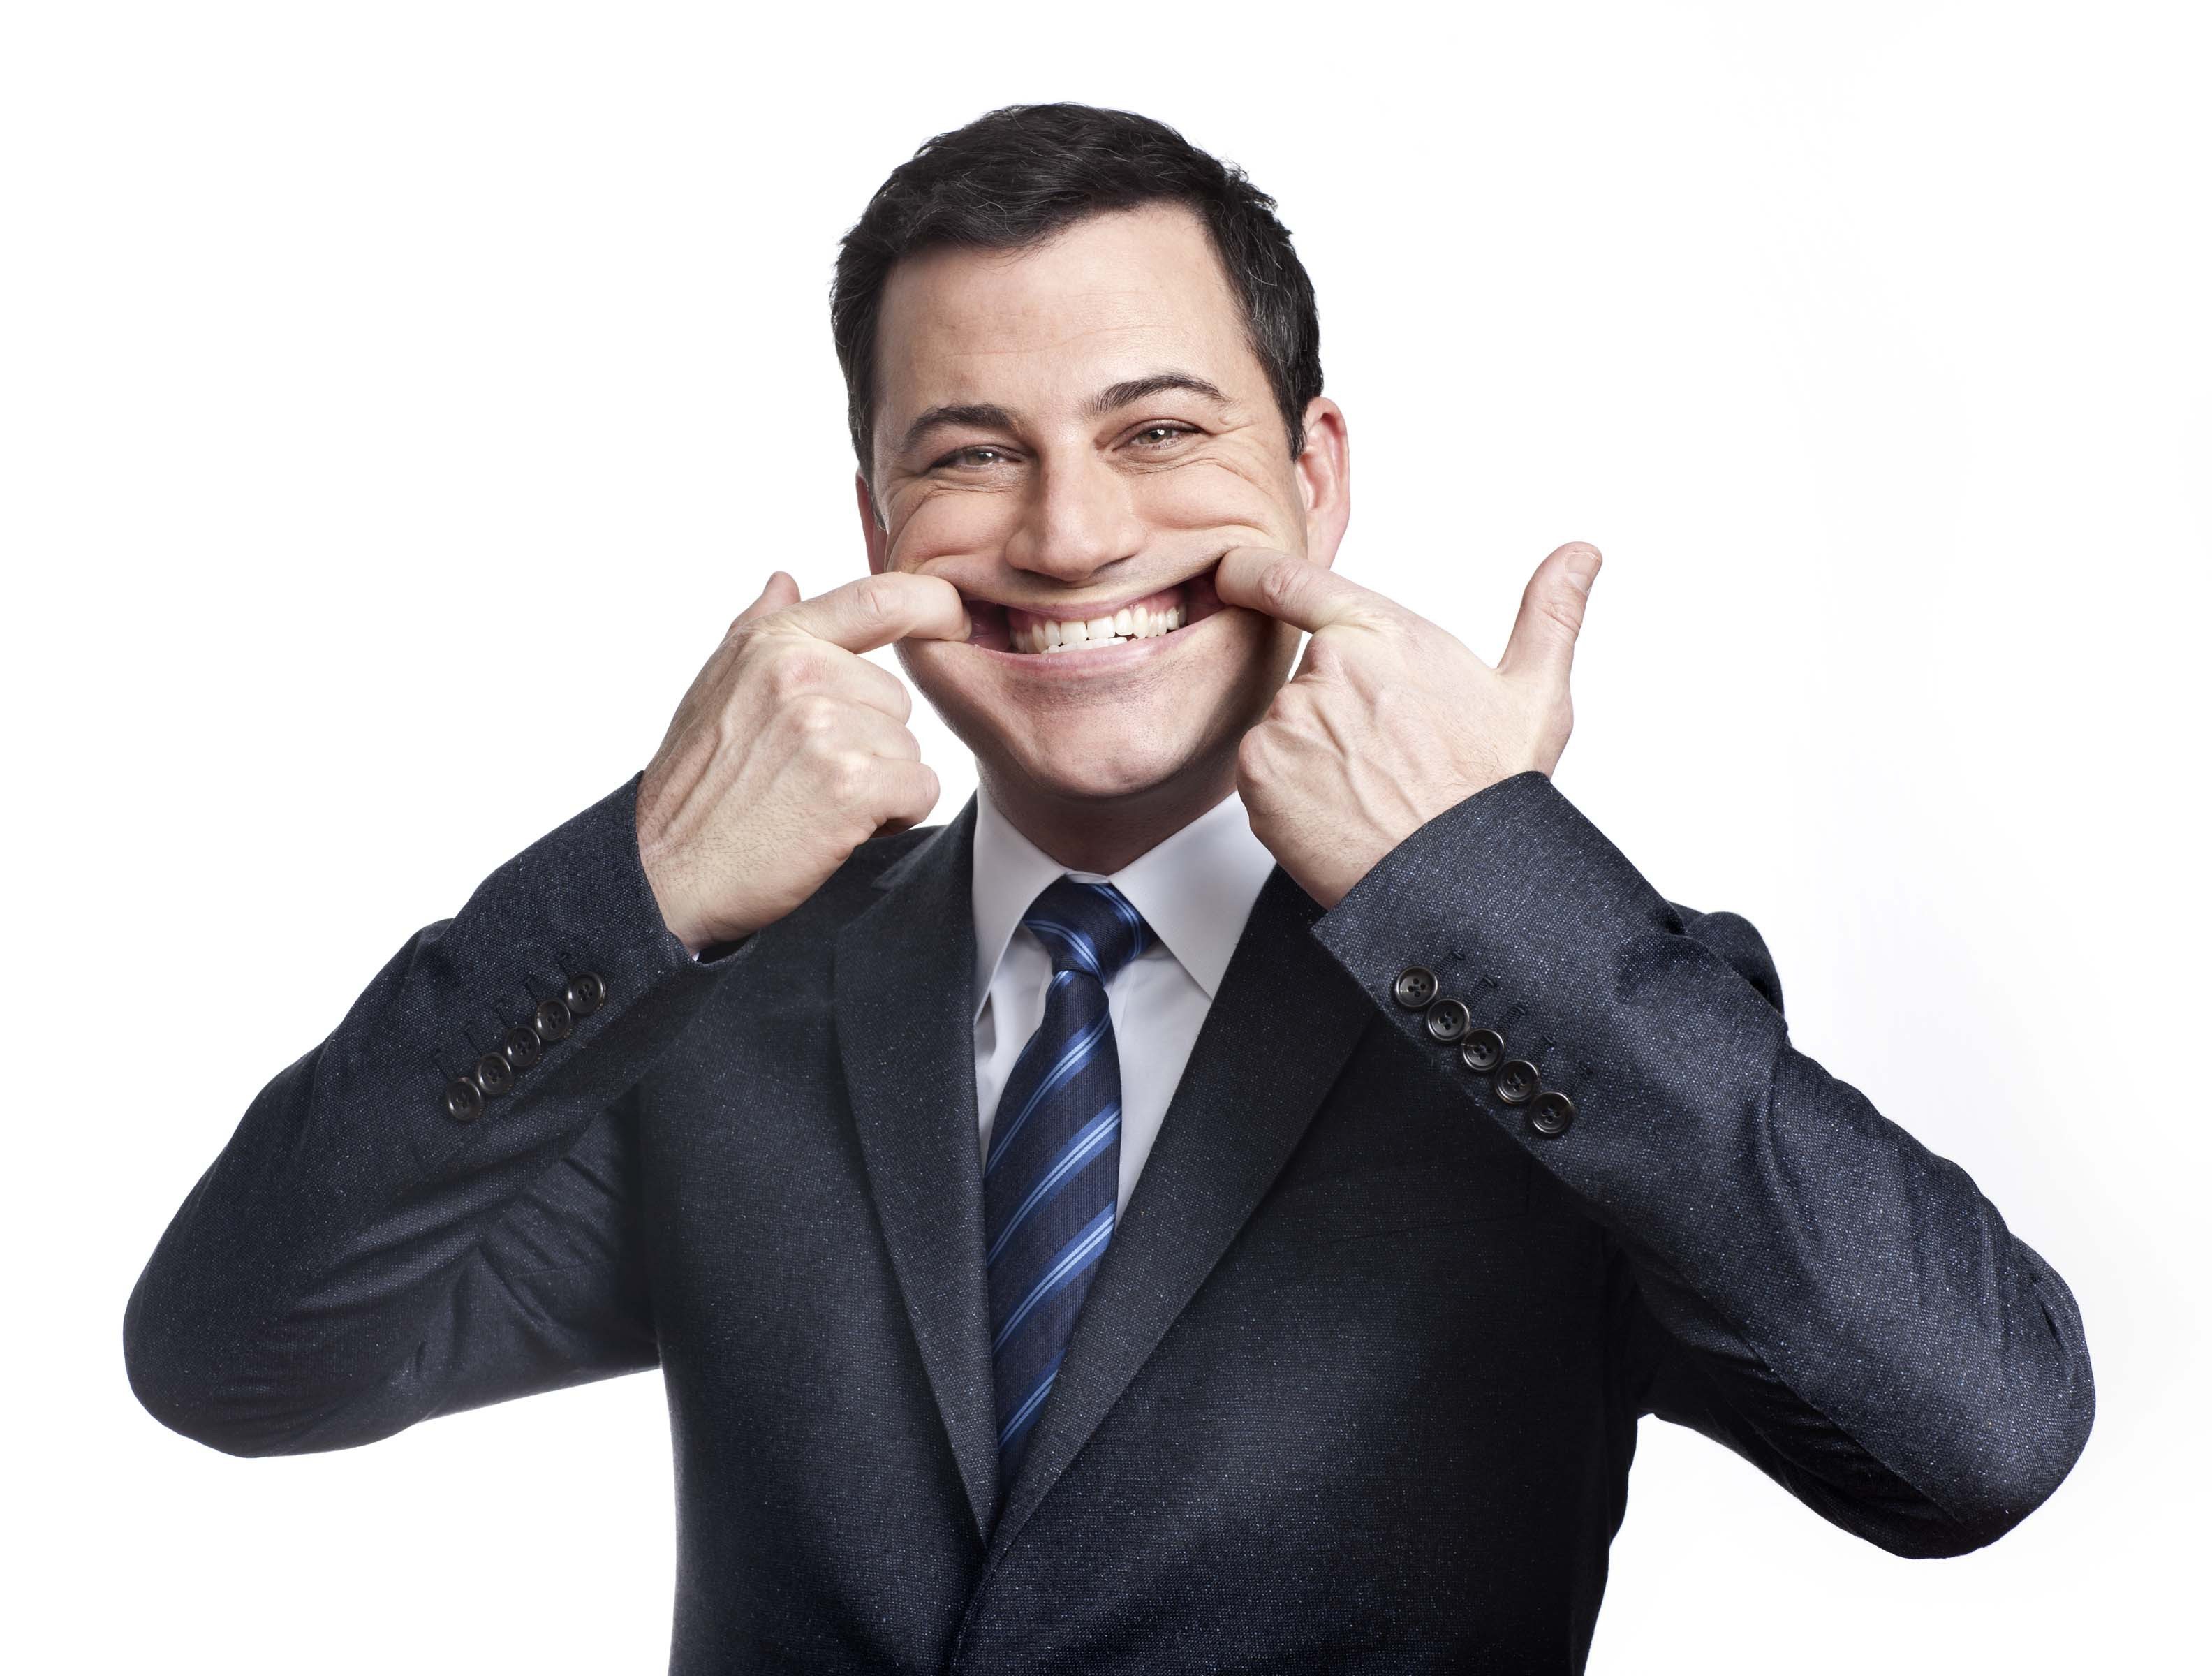 Jimmy Kimmel Wallpapers Images Photos Pictures Backgrounds 3168x2400